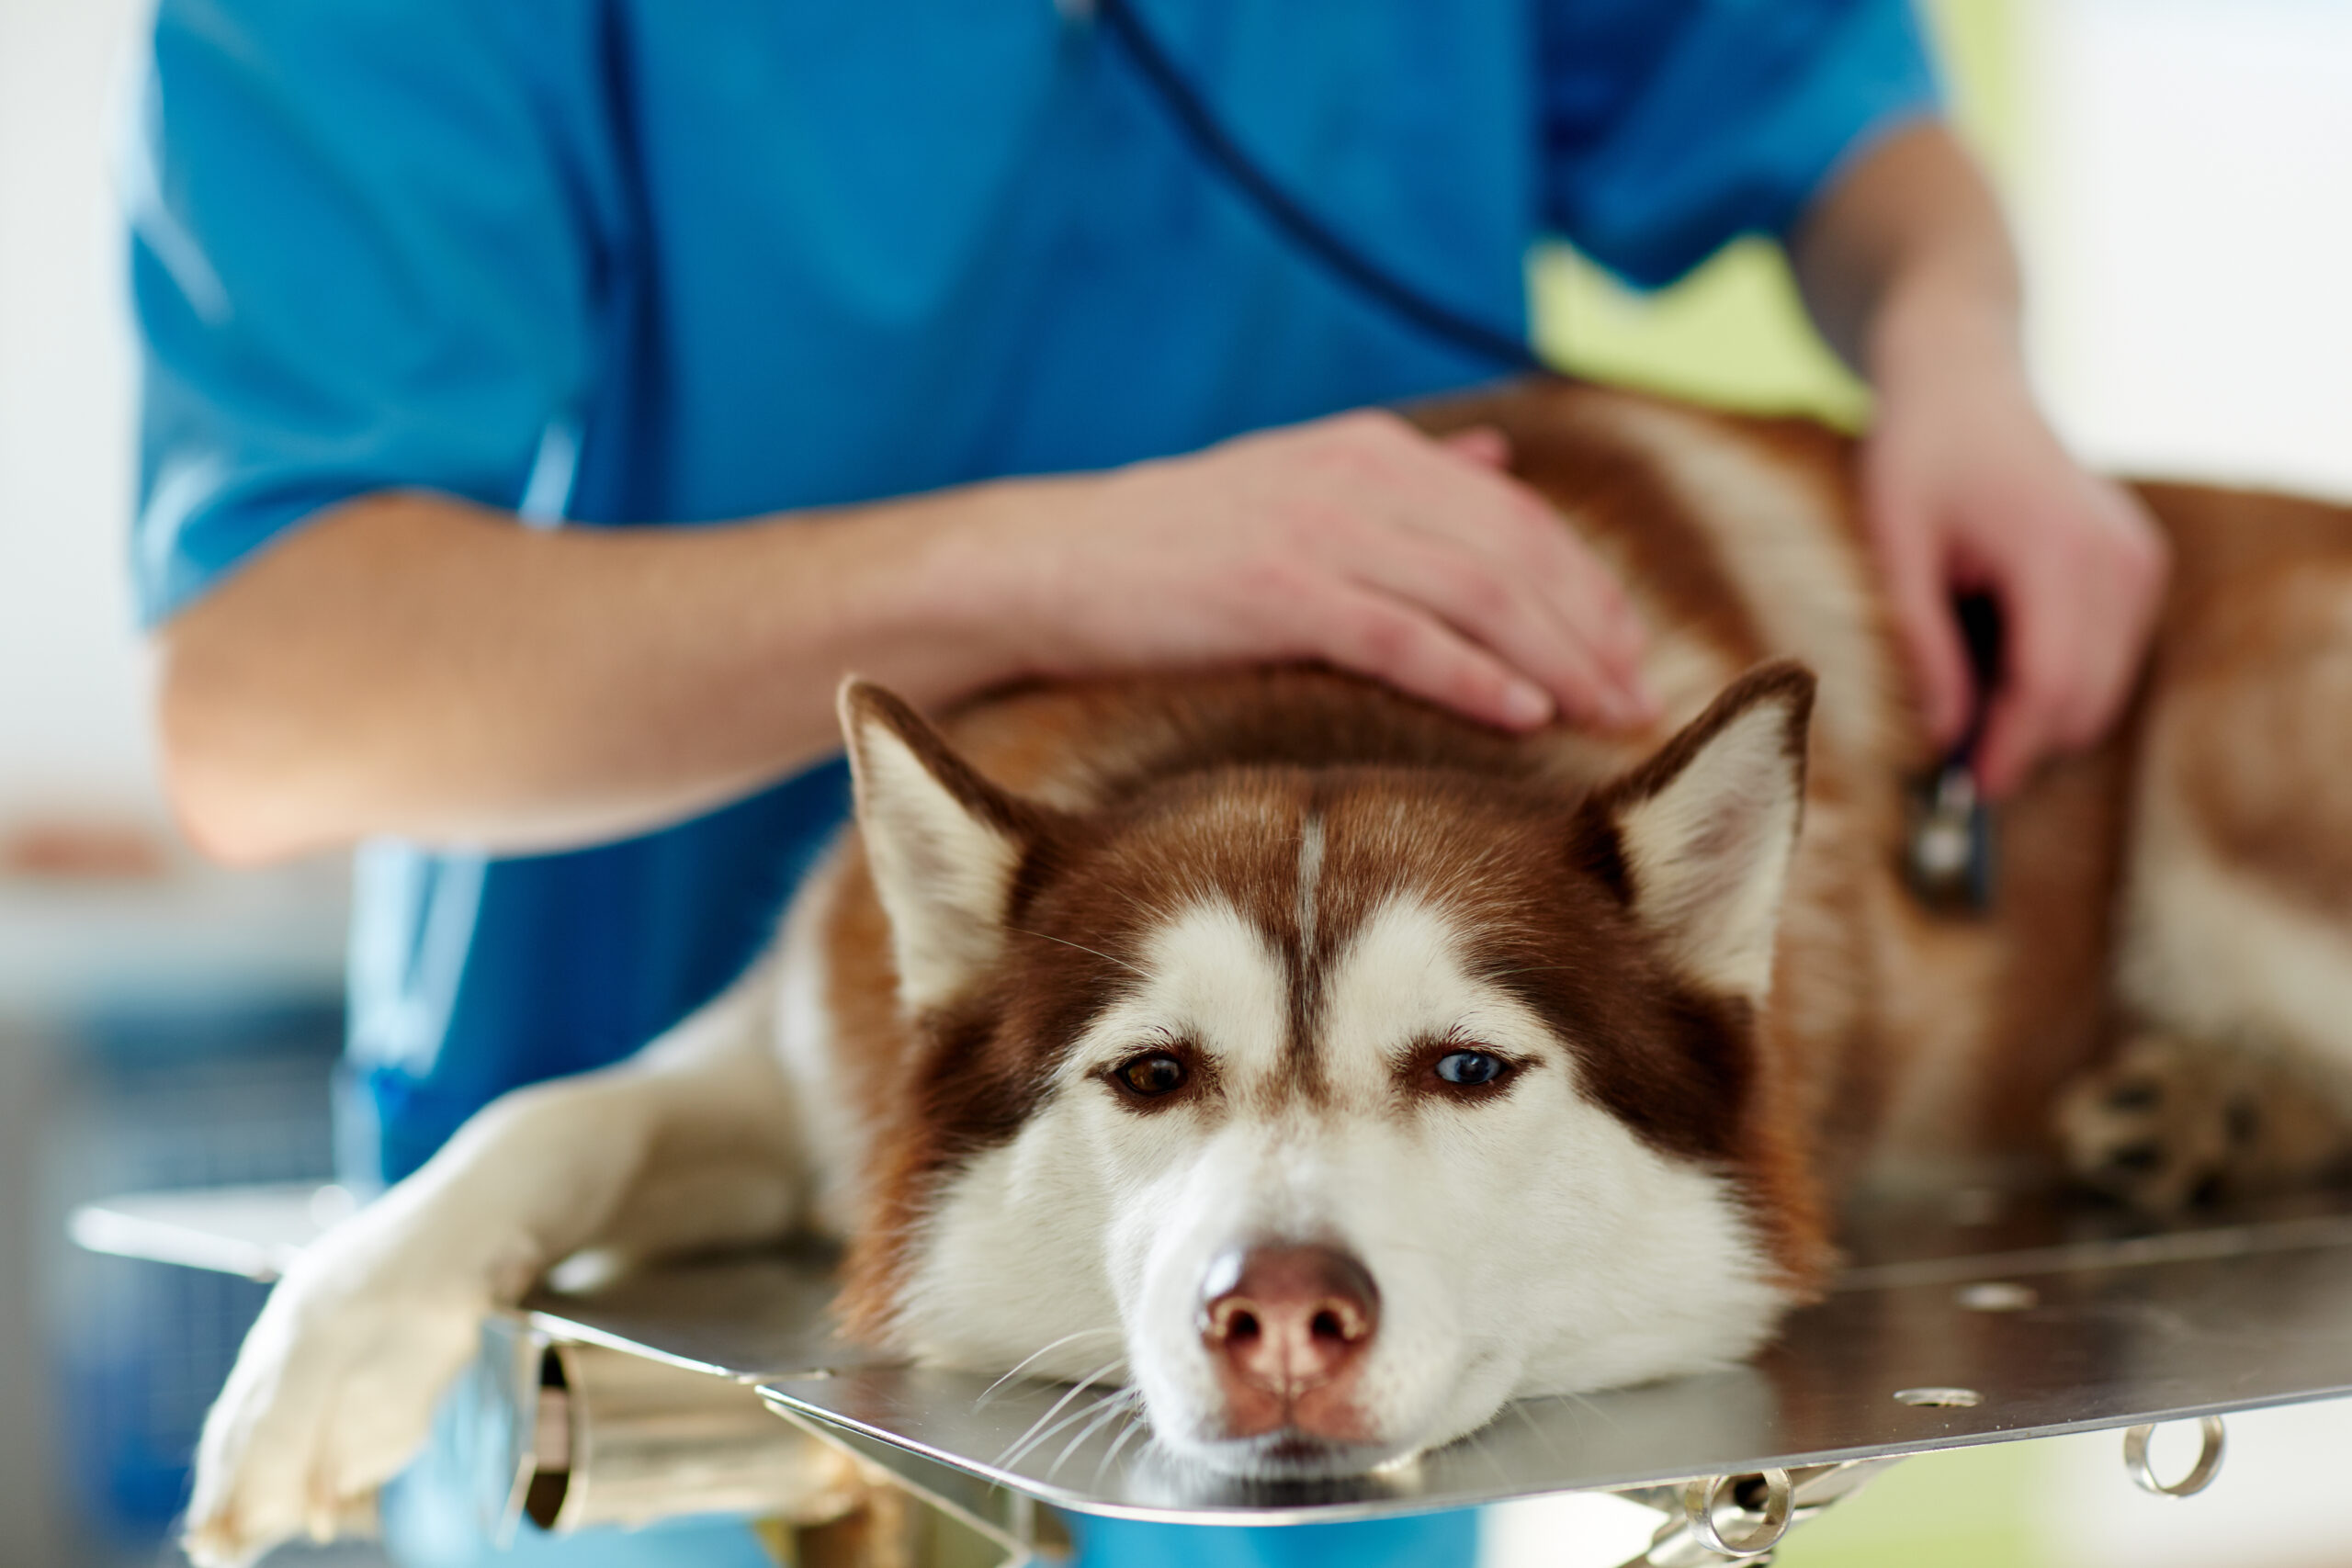 A Vet Explains What You Need To Know About Pet Insurance For Your Dog